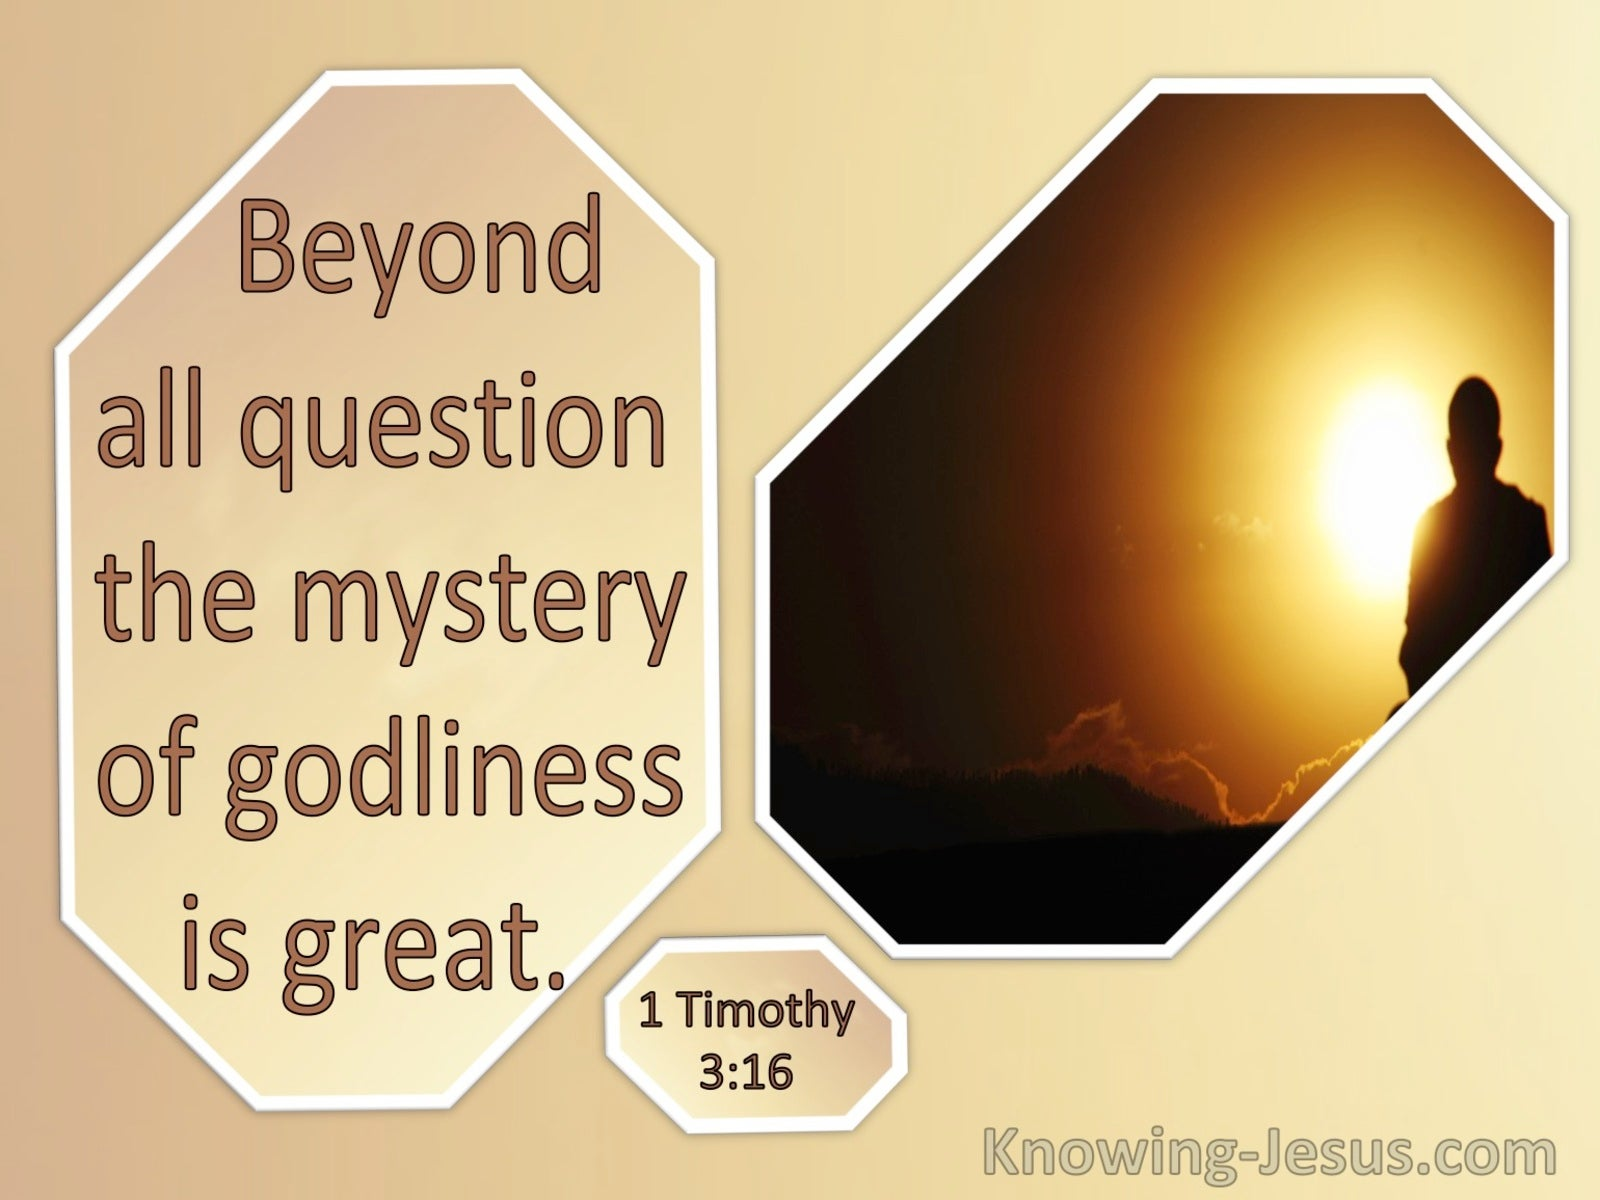 1 Timothy 3:16 The Mystery Of Godliness Is Great (windows)02:04